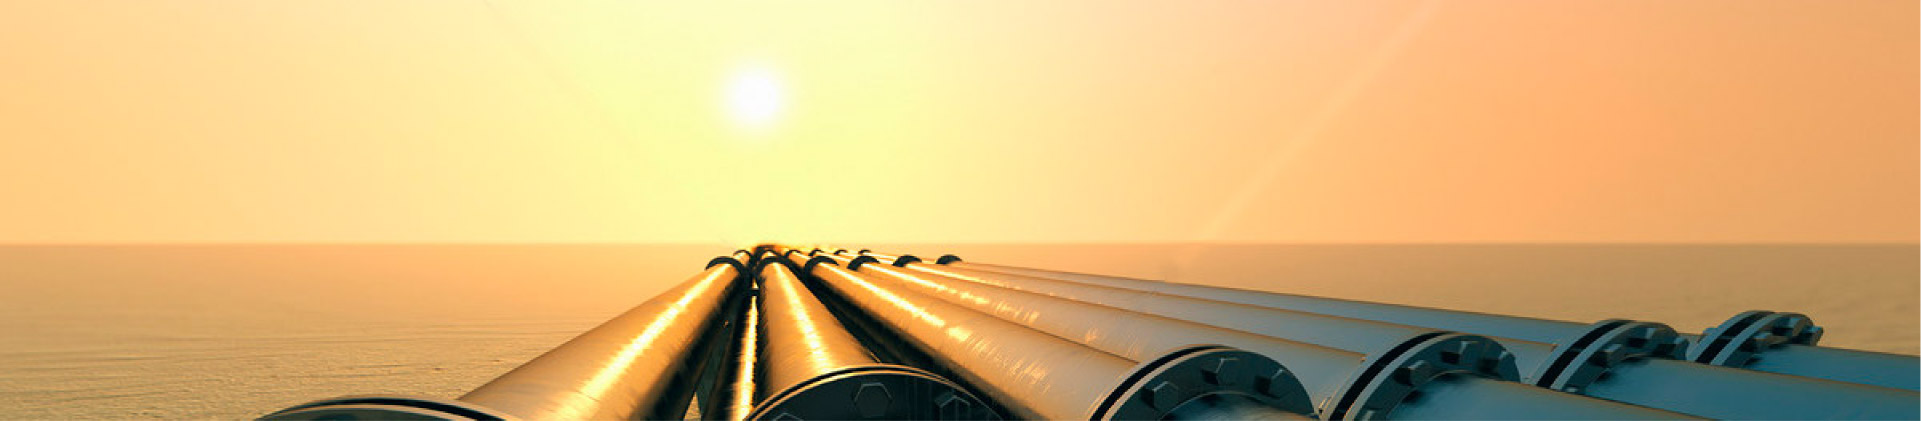 Oil Prices Rose as Inventories Fell: Foreign Exchange